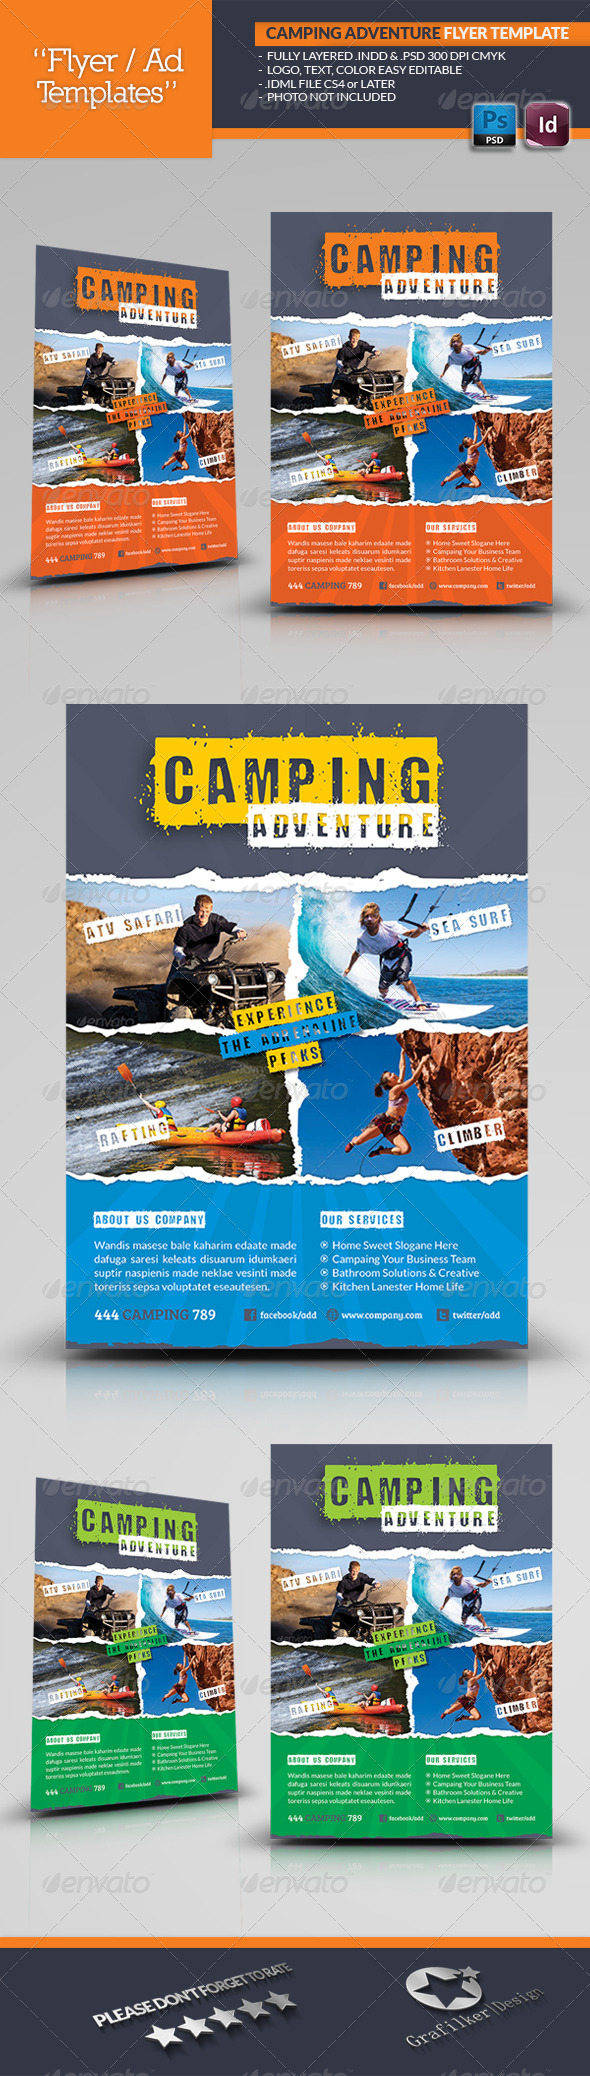 GraphicRiver Camping Adventure Flyer Template 5238054